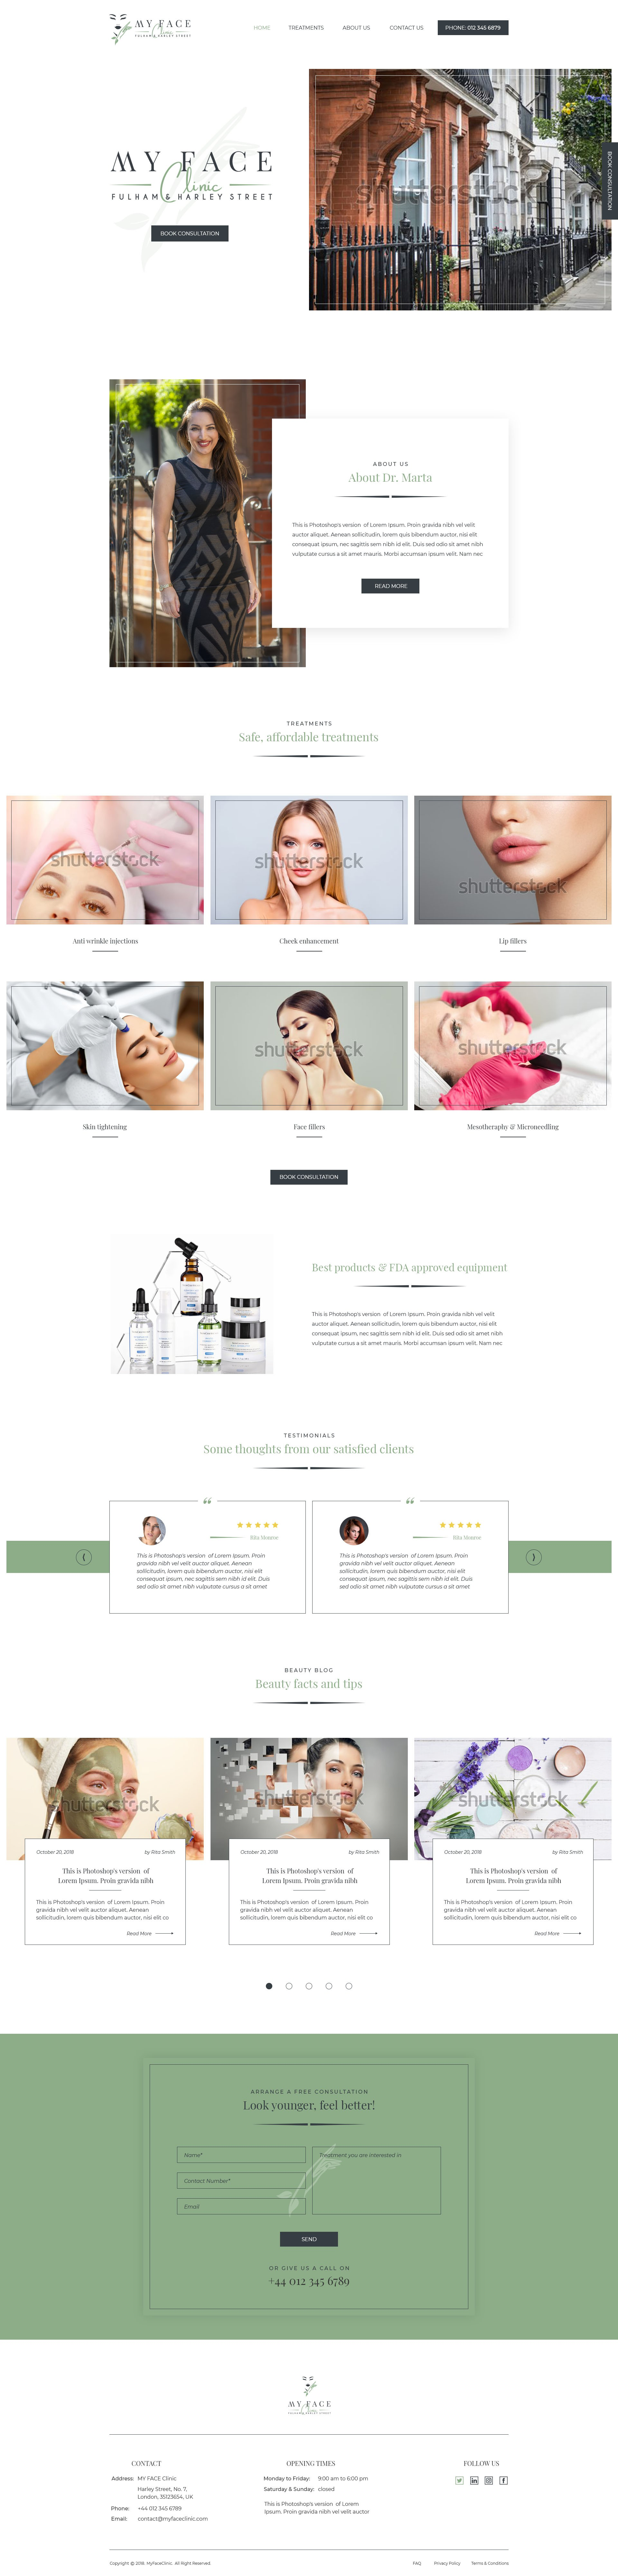 Elegant website for a My Face Clinic in Central London